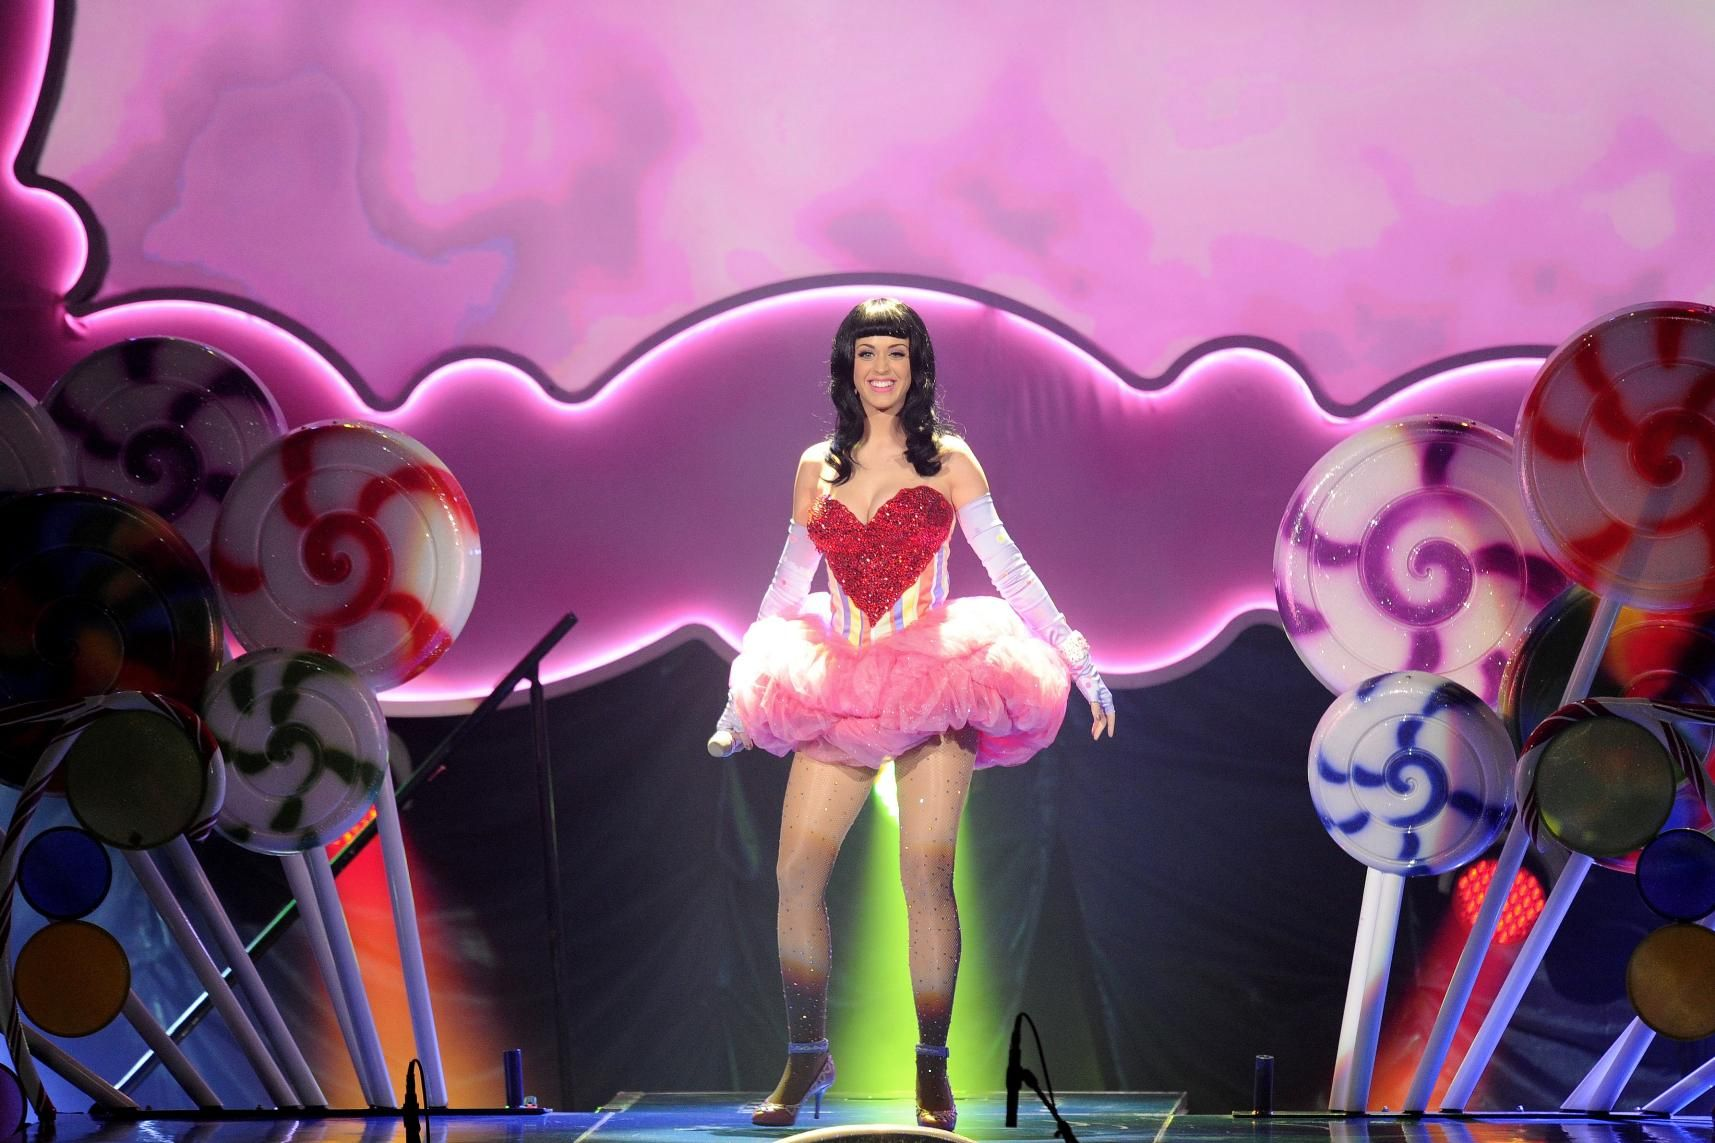 379063d1299667522-katy-perry-performs-live-le-zenith-paris-march-7-2011-heart-costume-97108_katyperry002_122_184lo.jpg (1715×1143)